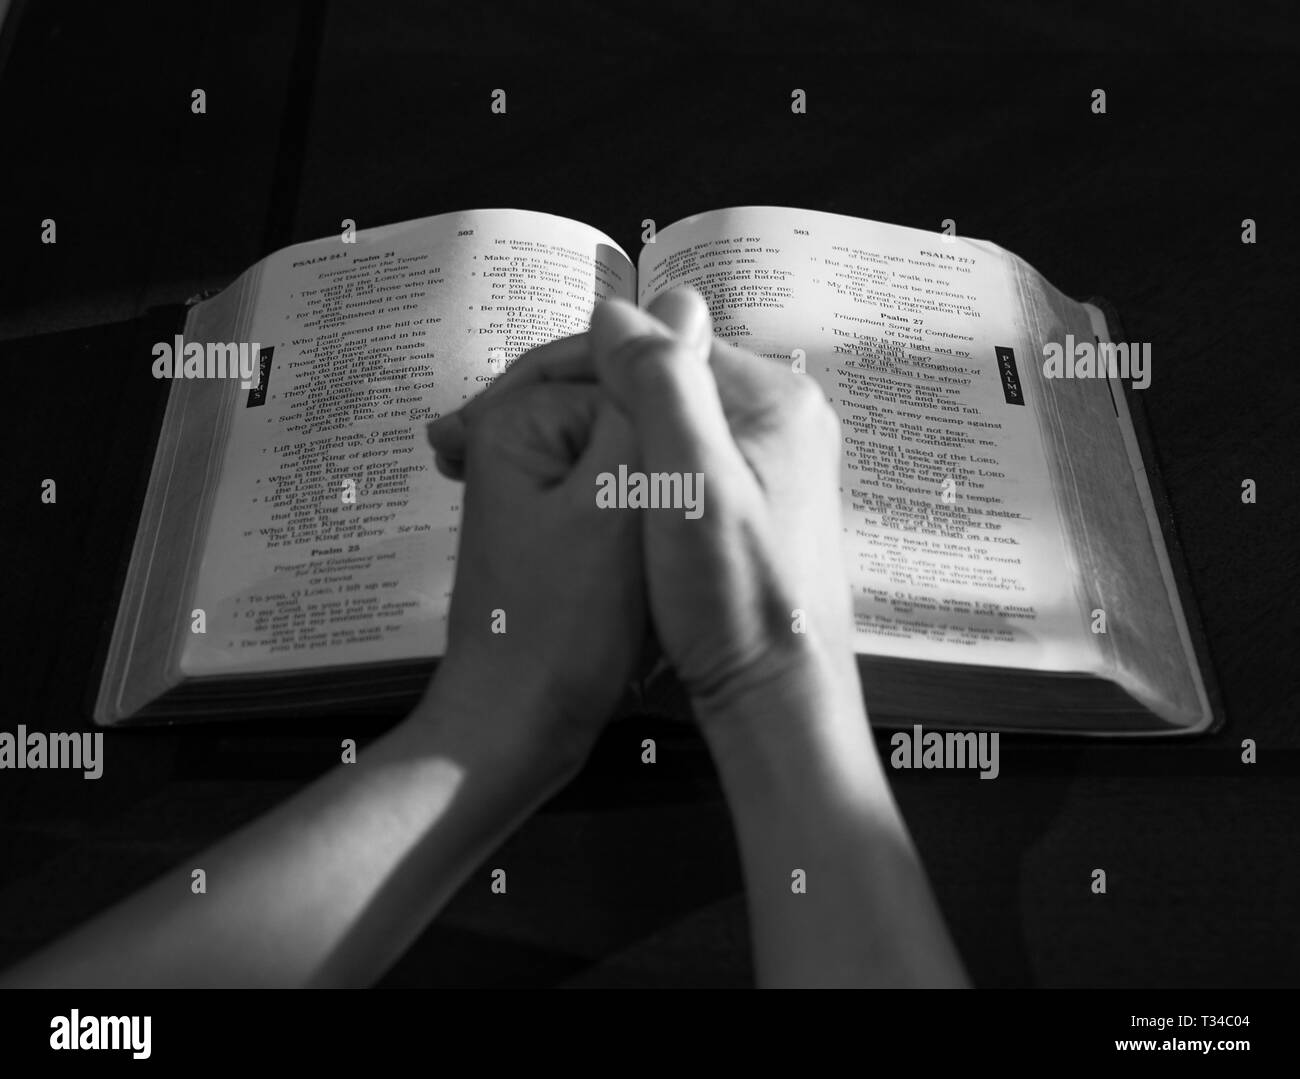 Religious Education Black and White Stock Photos & Images